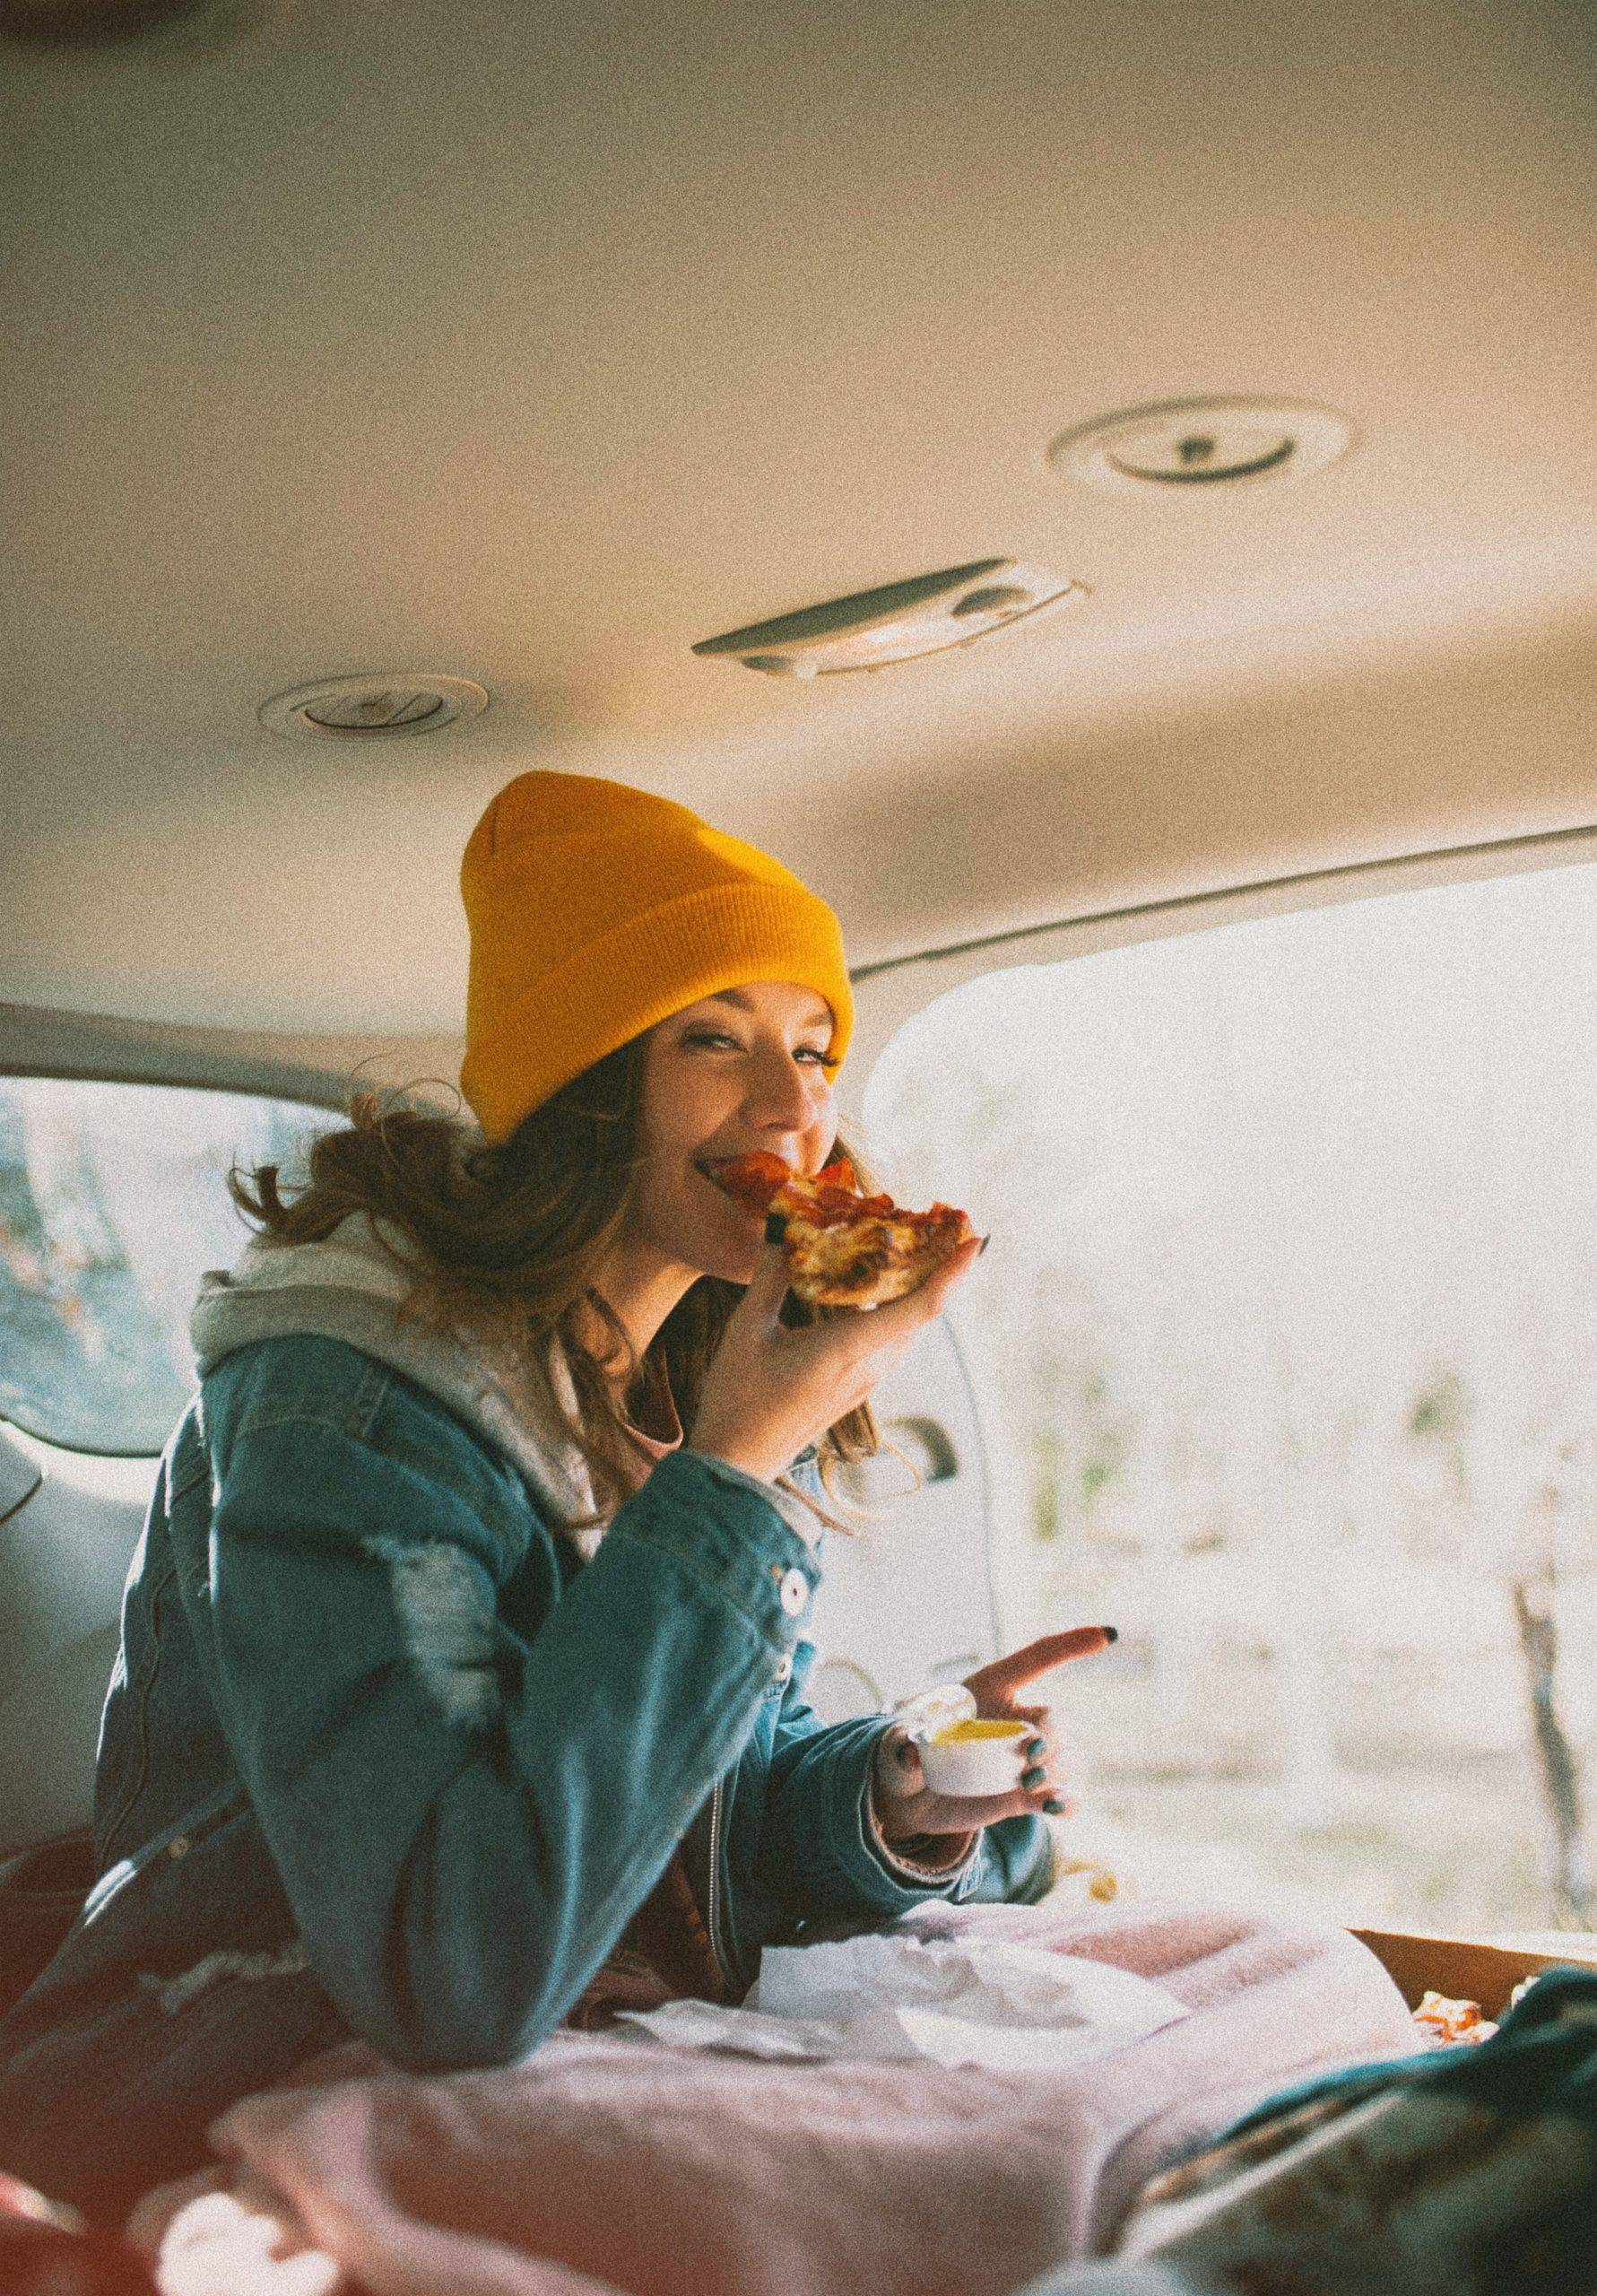 Woman in yellow beanie eating pizza in the car